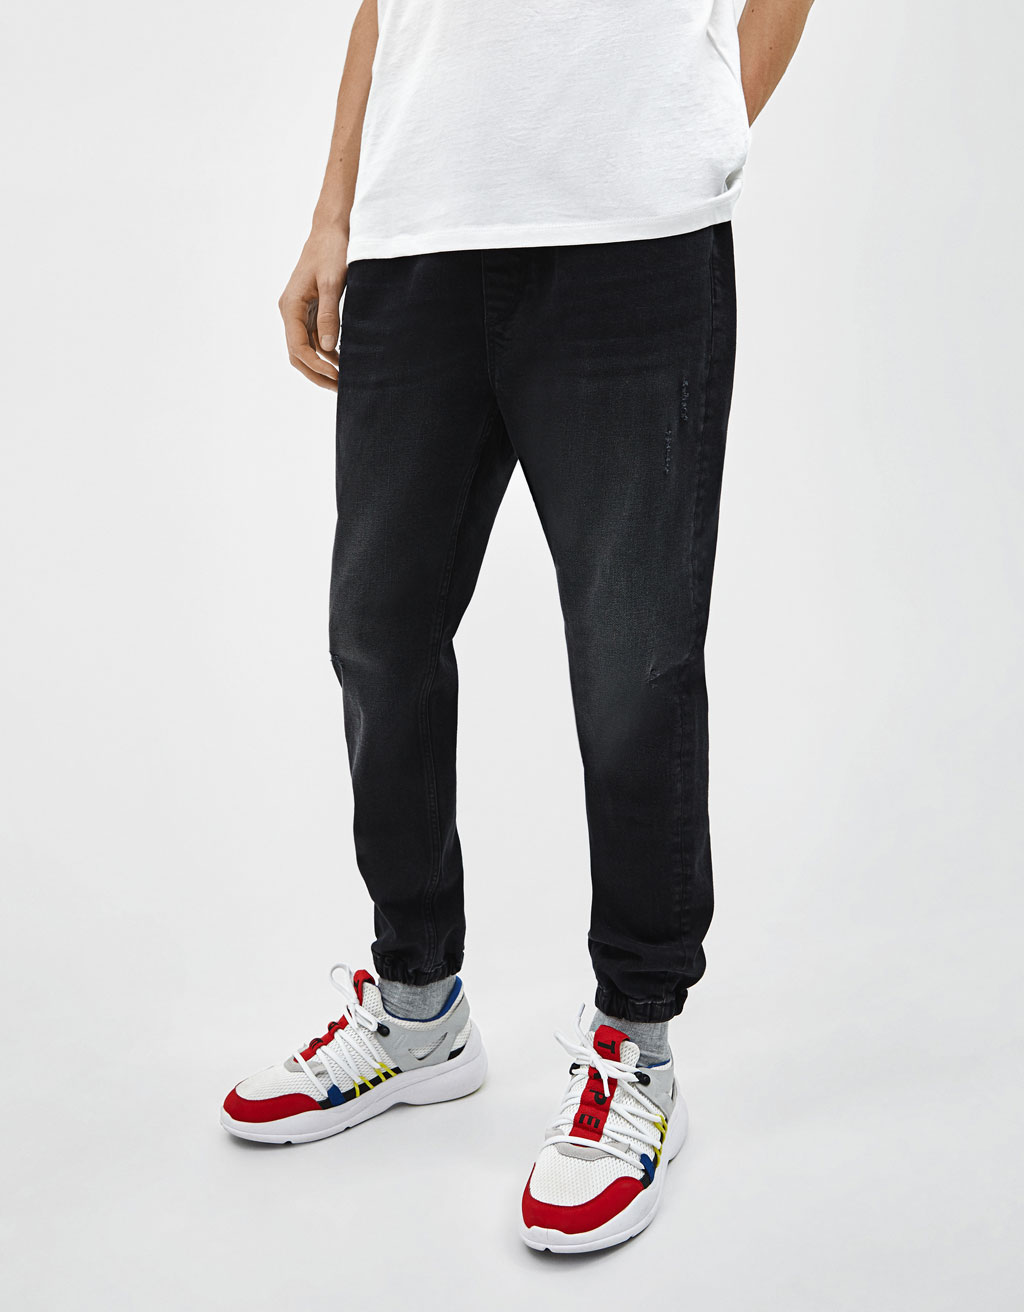 Pantalon rétro sport denim